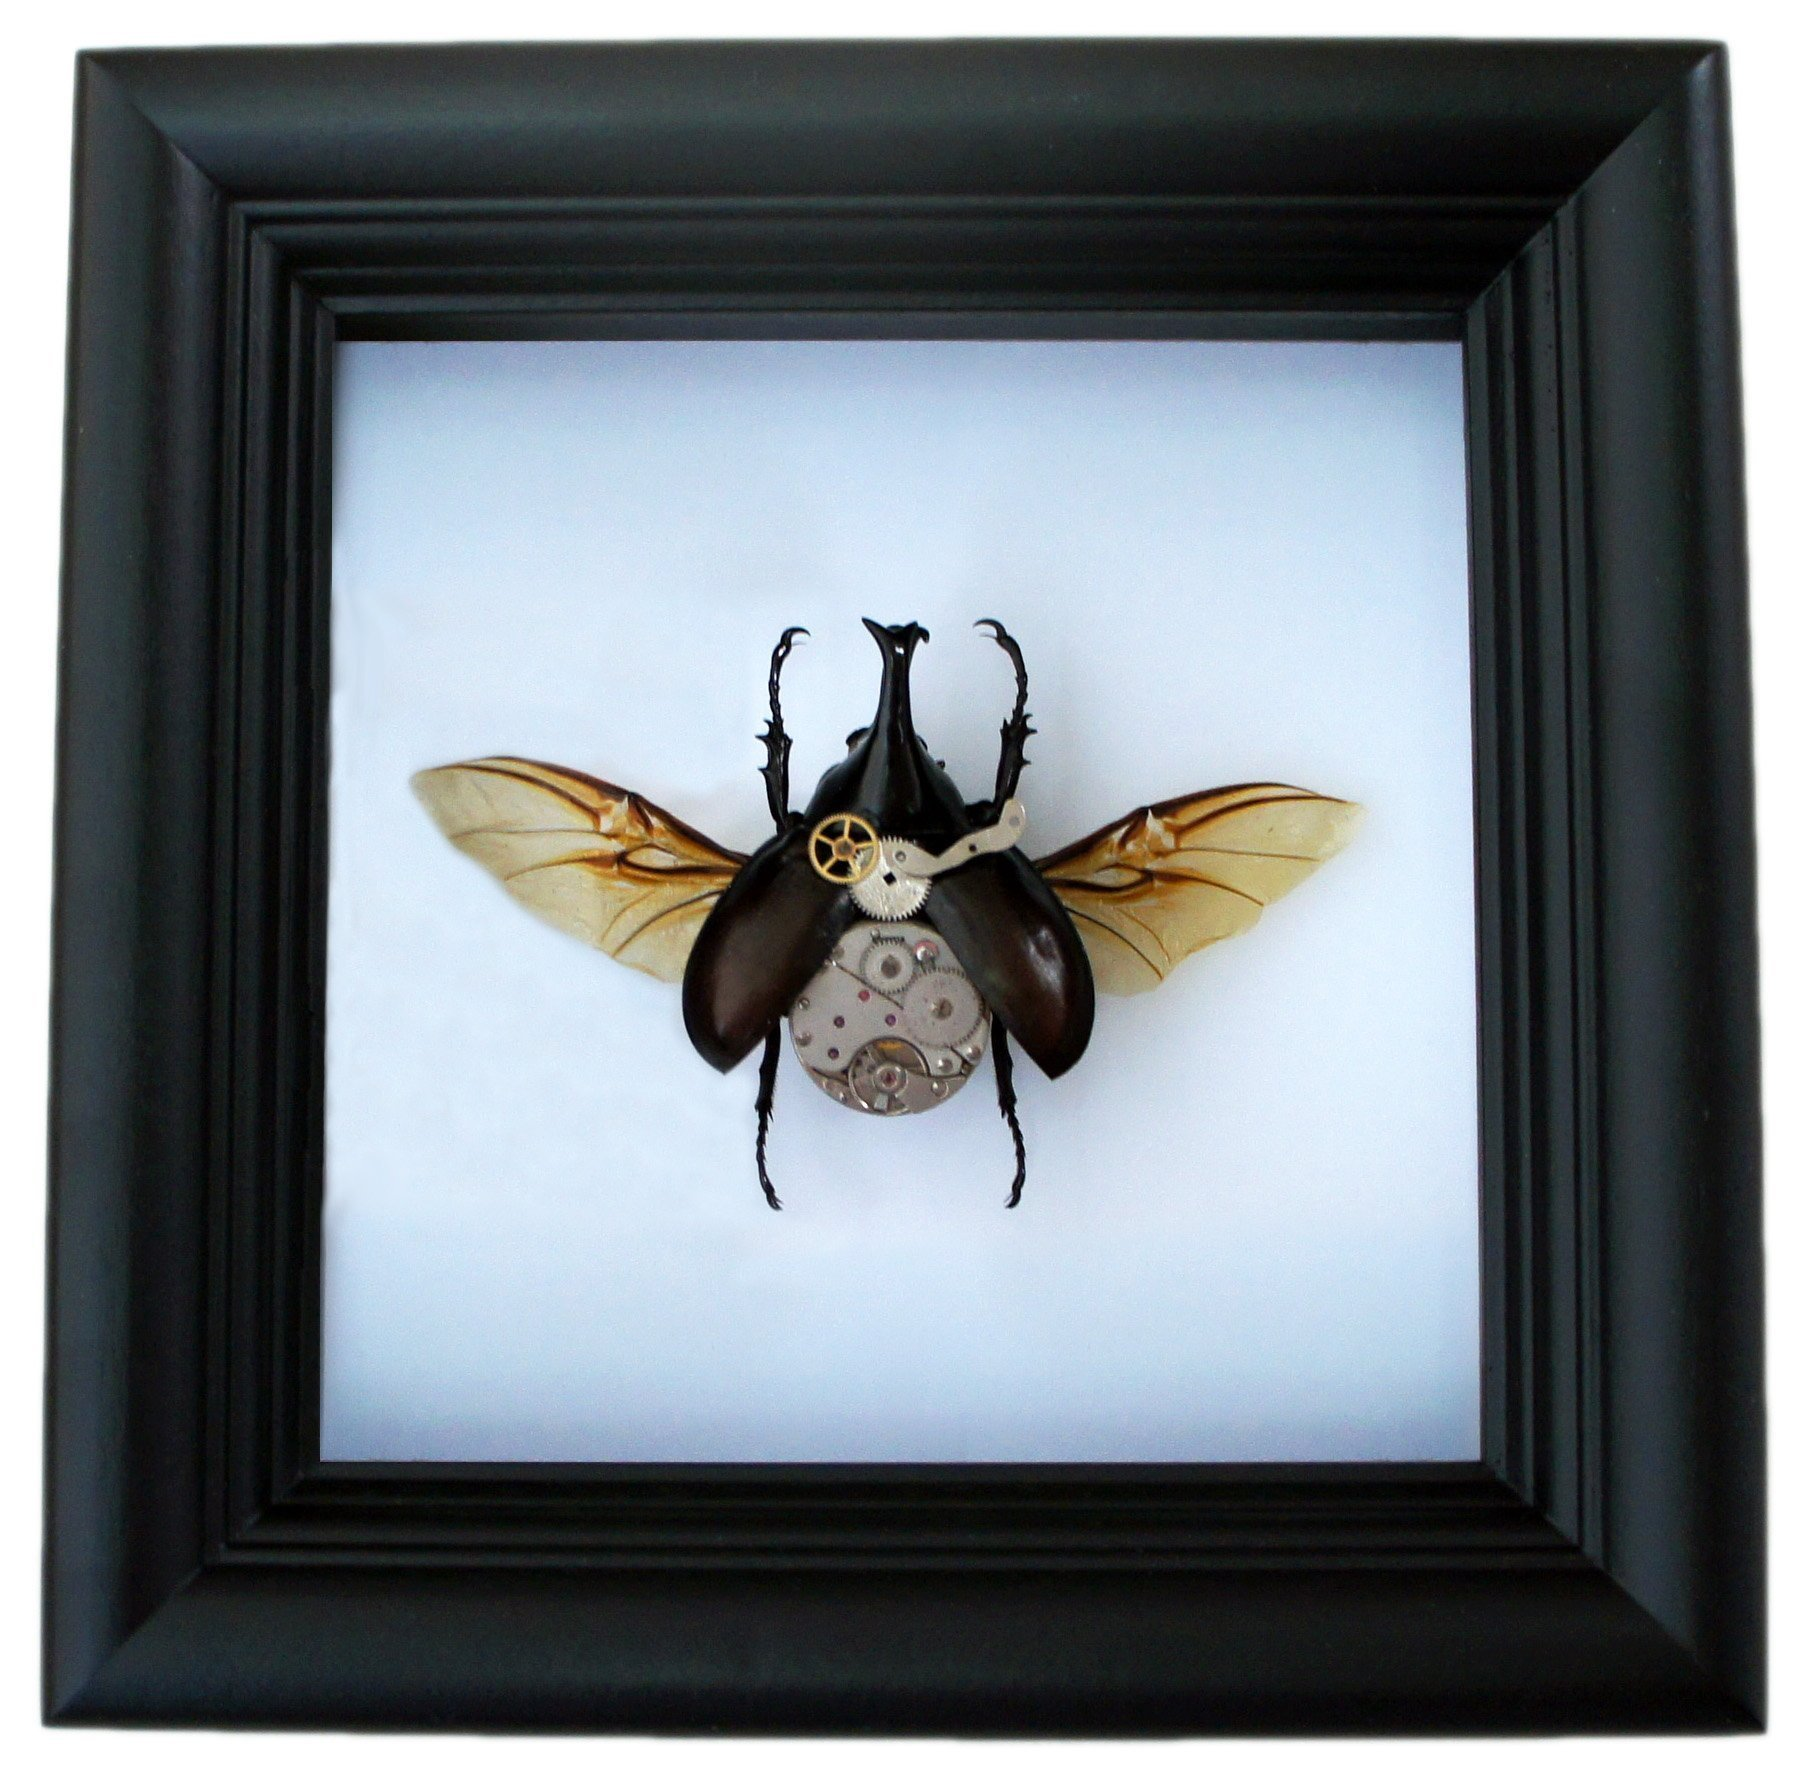 Real Steampunk Rhino Beetle Insect Taxidermy Display Shadow Box 4